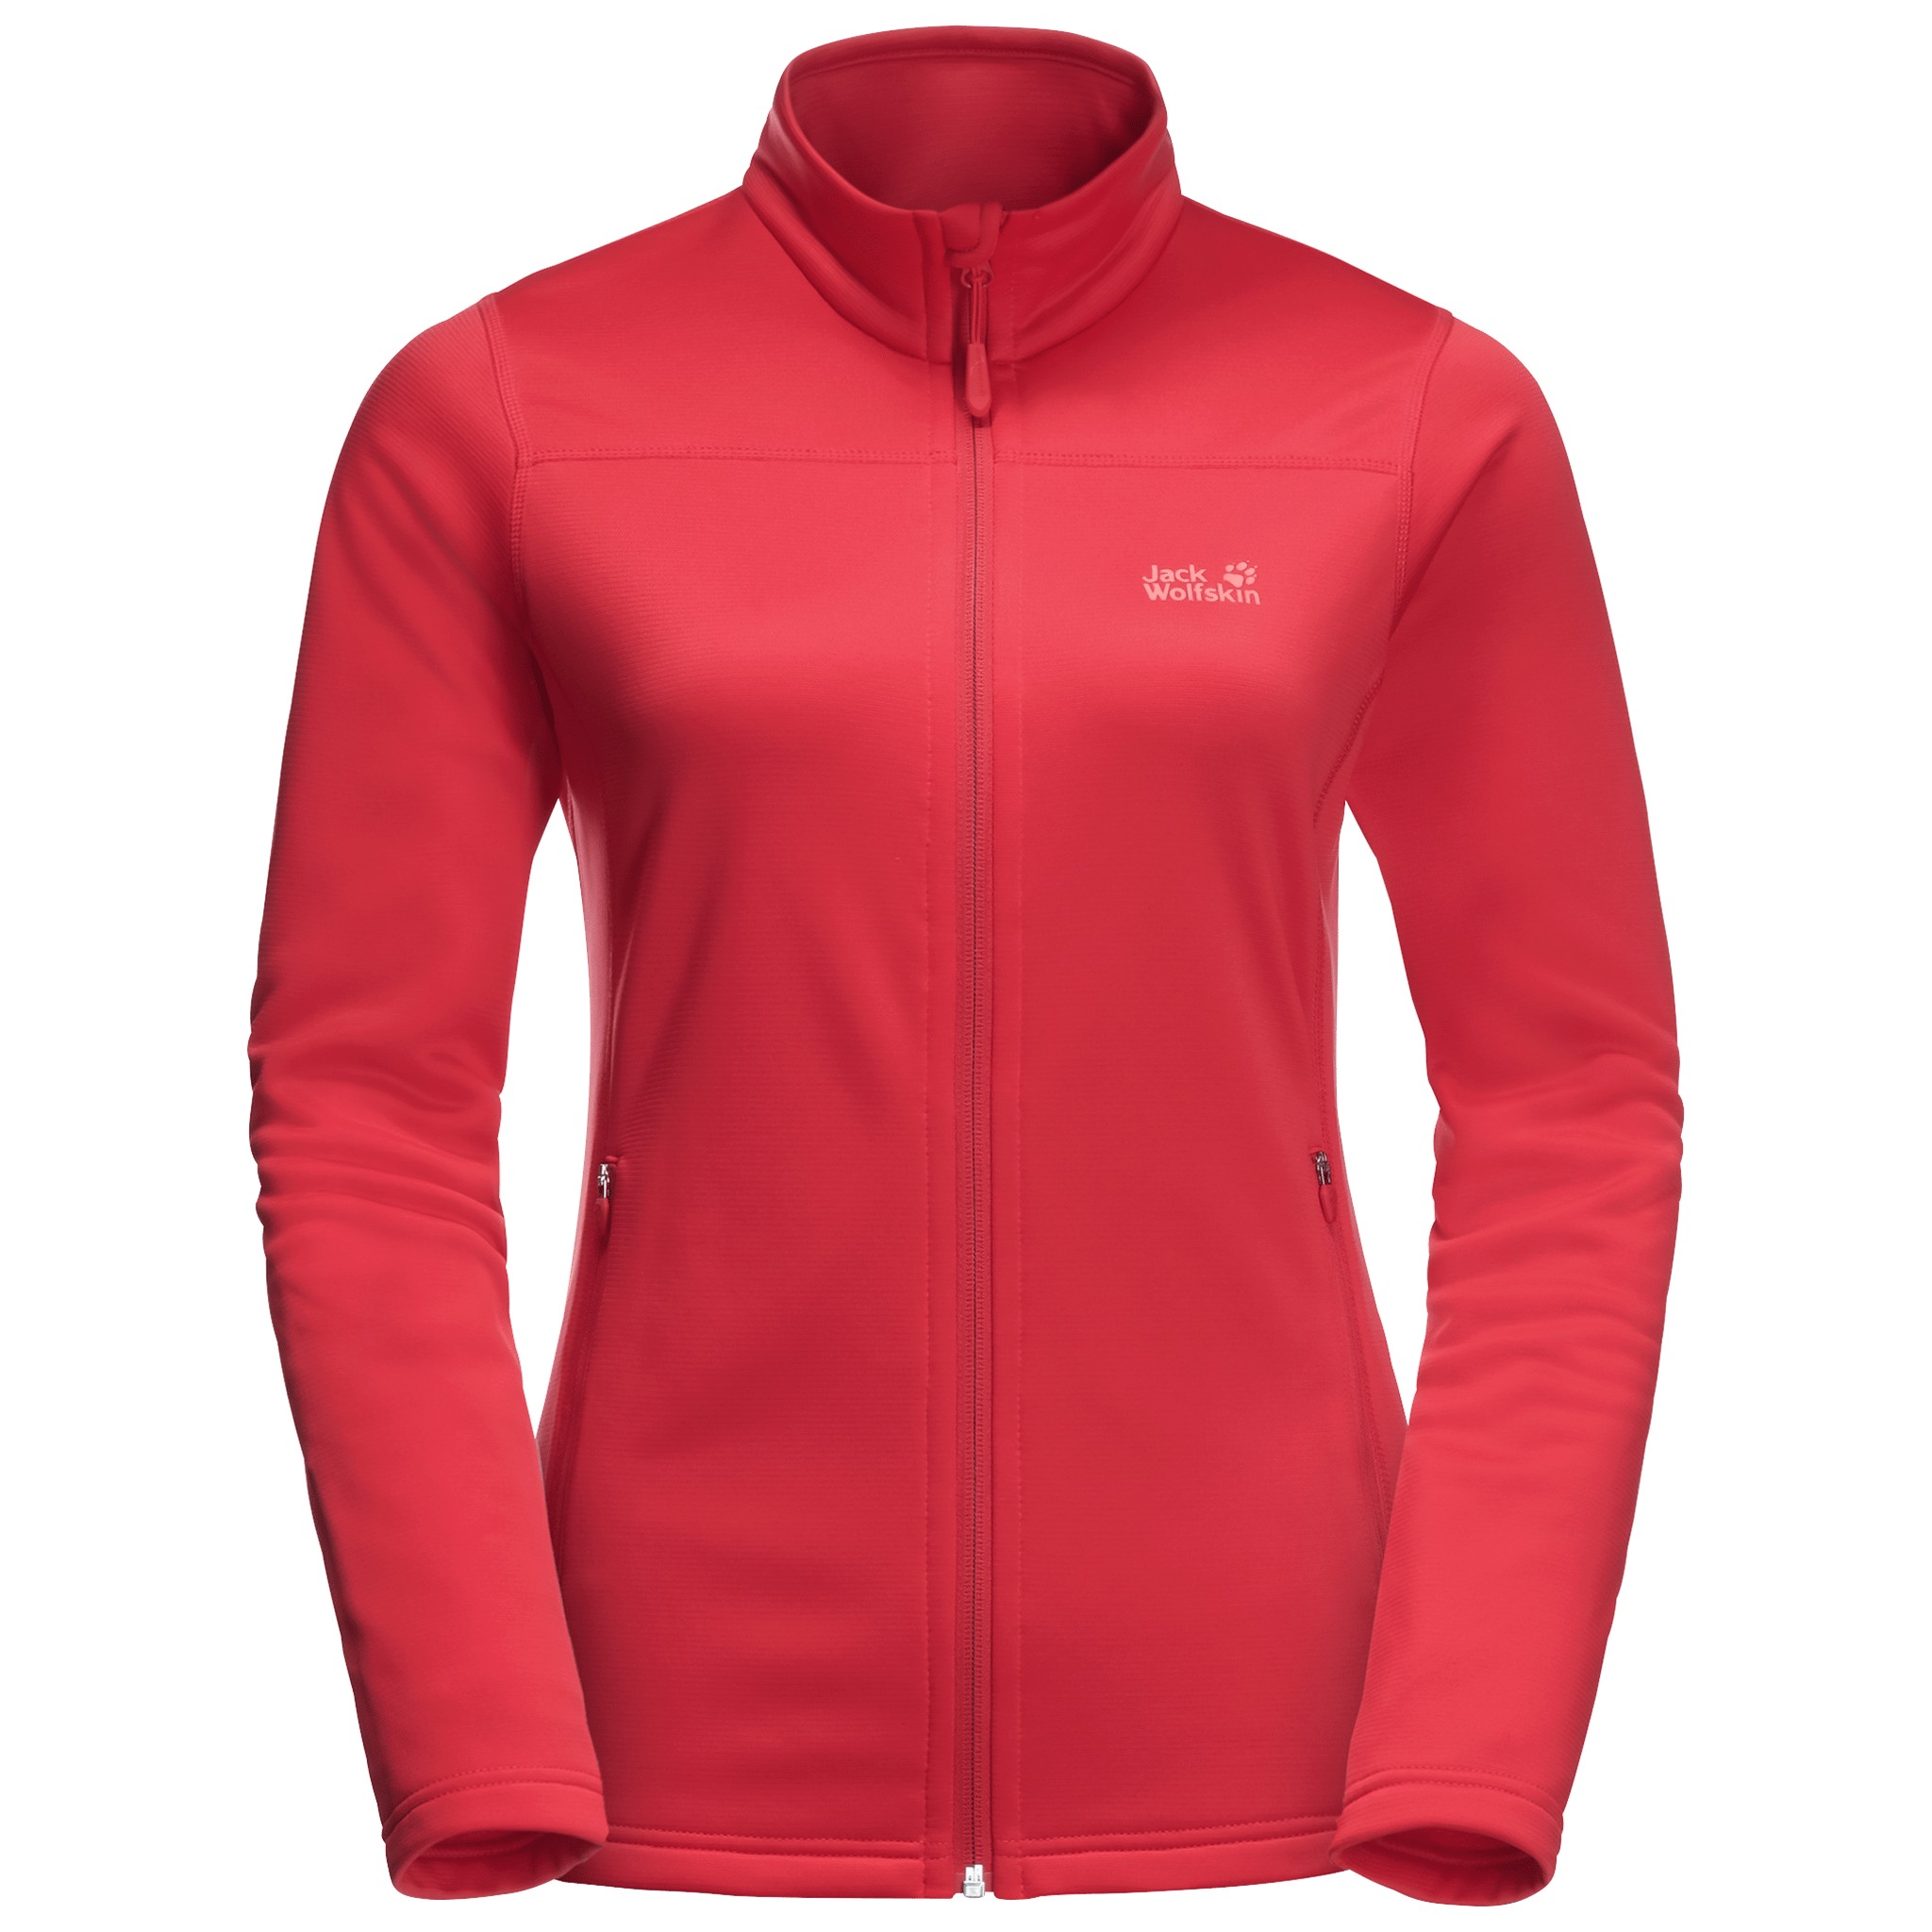 Tulip Red Fleece Jacket Women